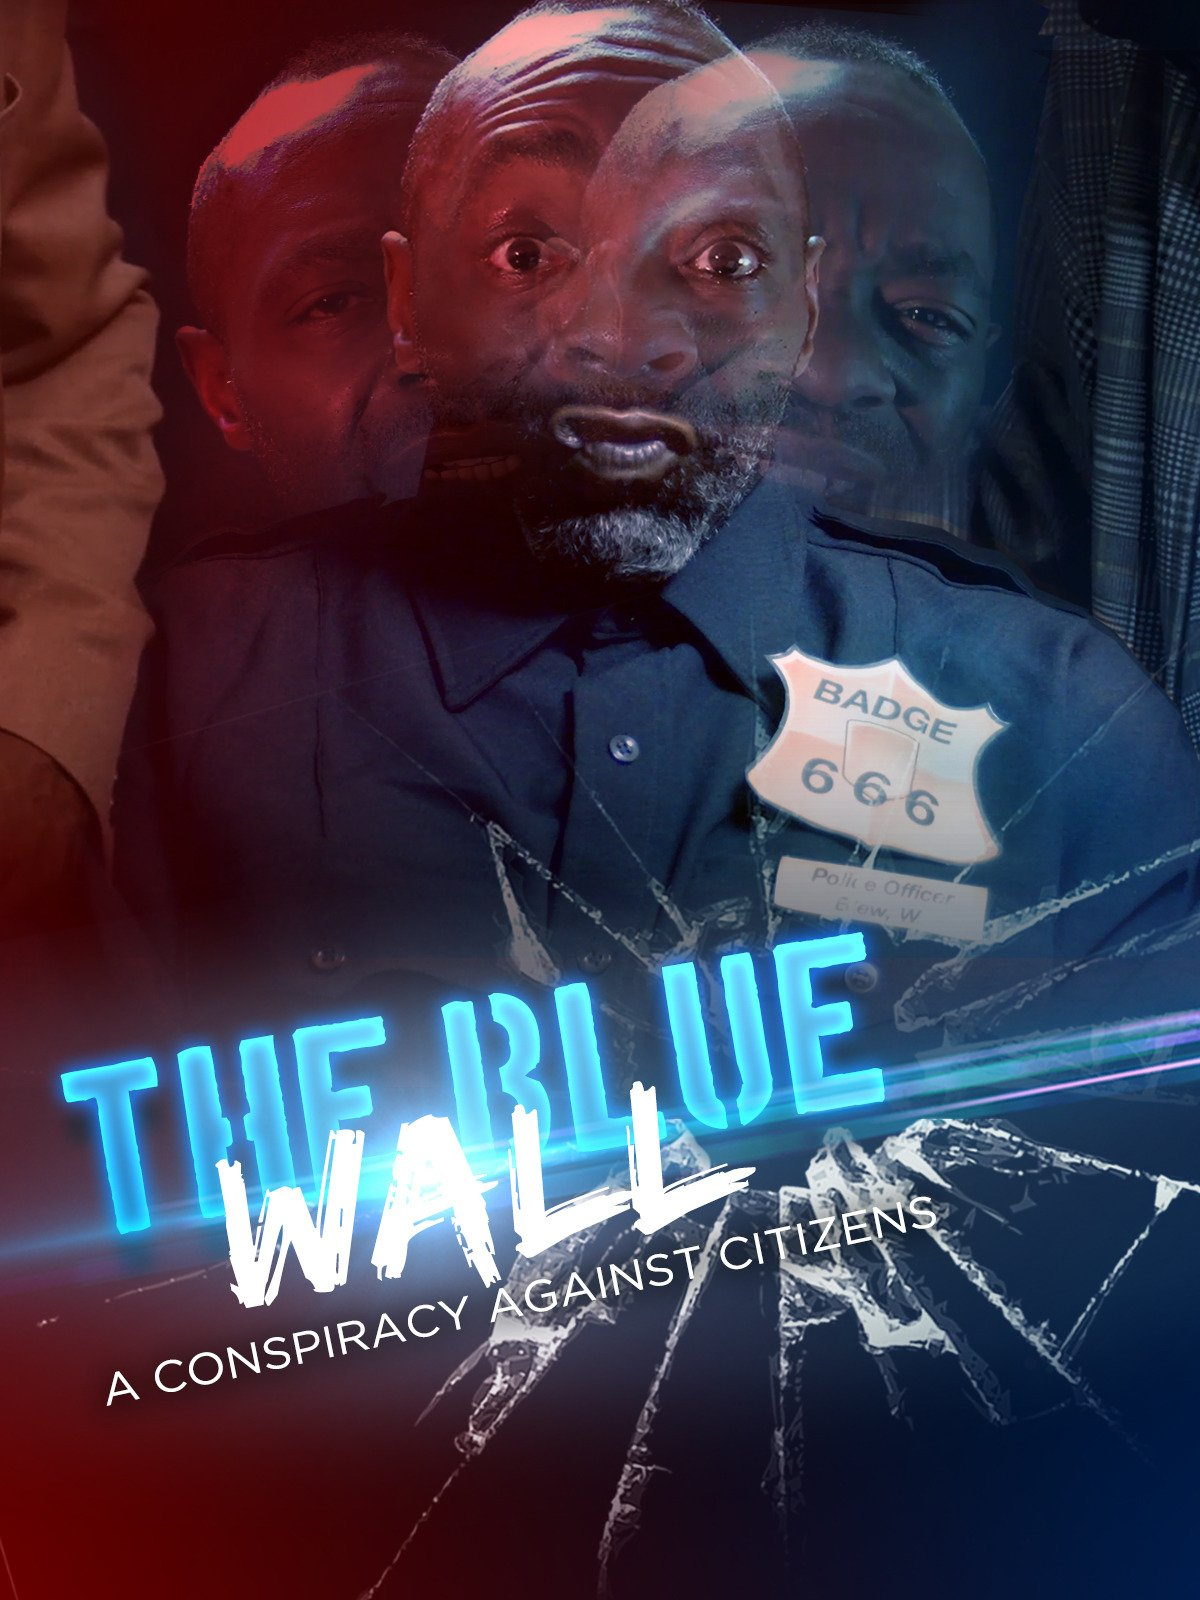 The Blue Wall: A Conspiracy Against Citizens